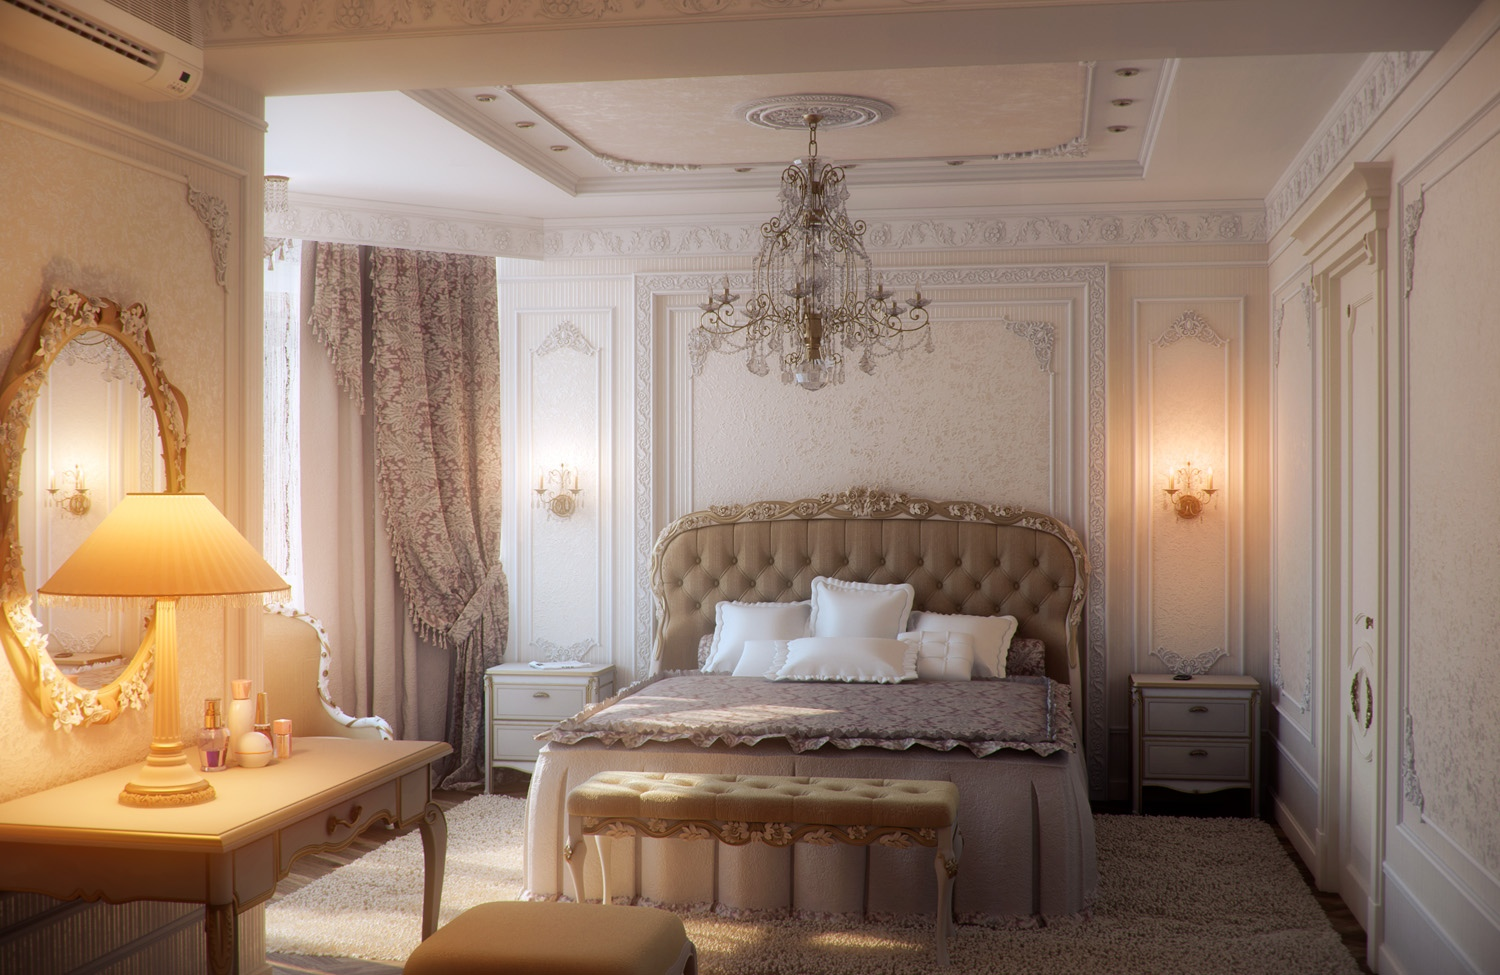 Bedrooms with traditional elegance for Bed room decoration ideas